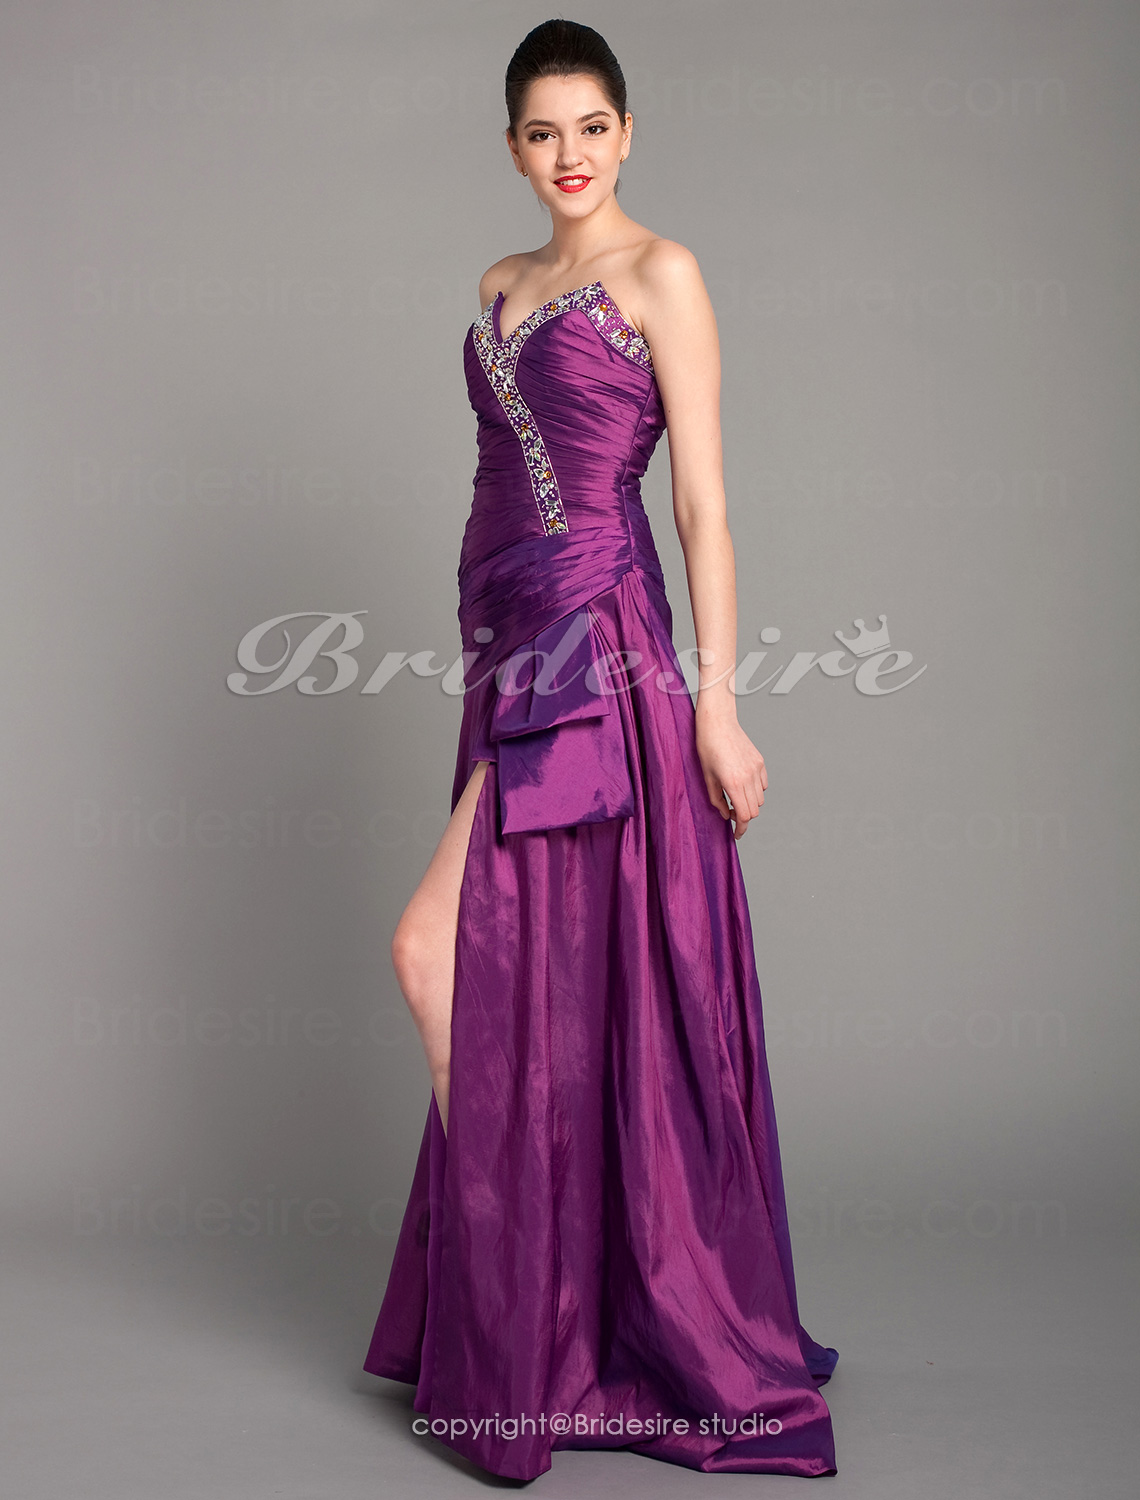 Empire Strapless Sleeveless Sweep Train Chiffon Wedding Dress